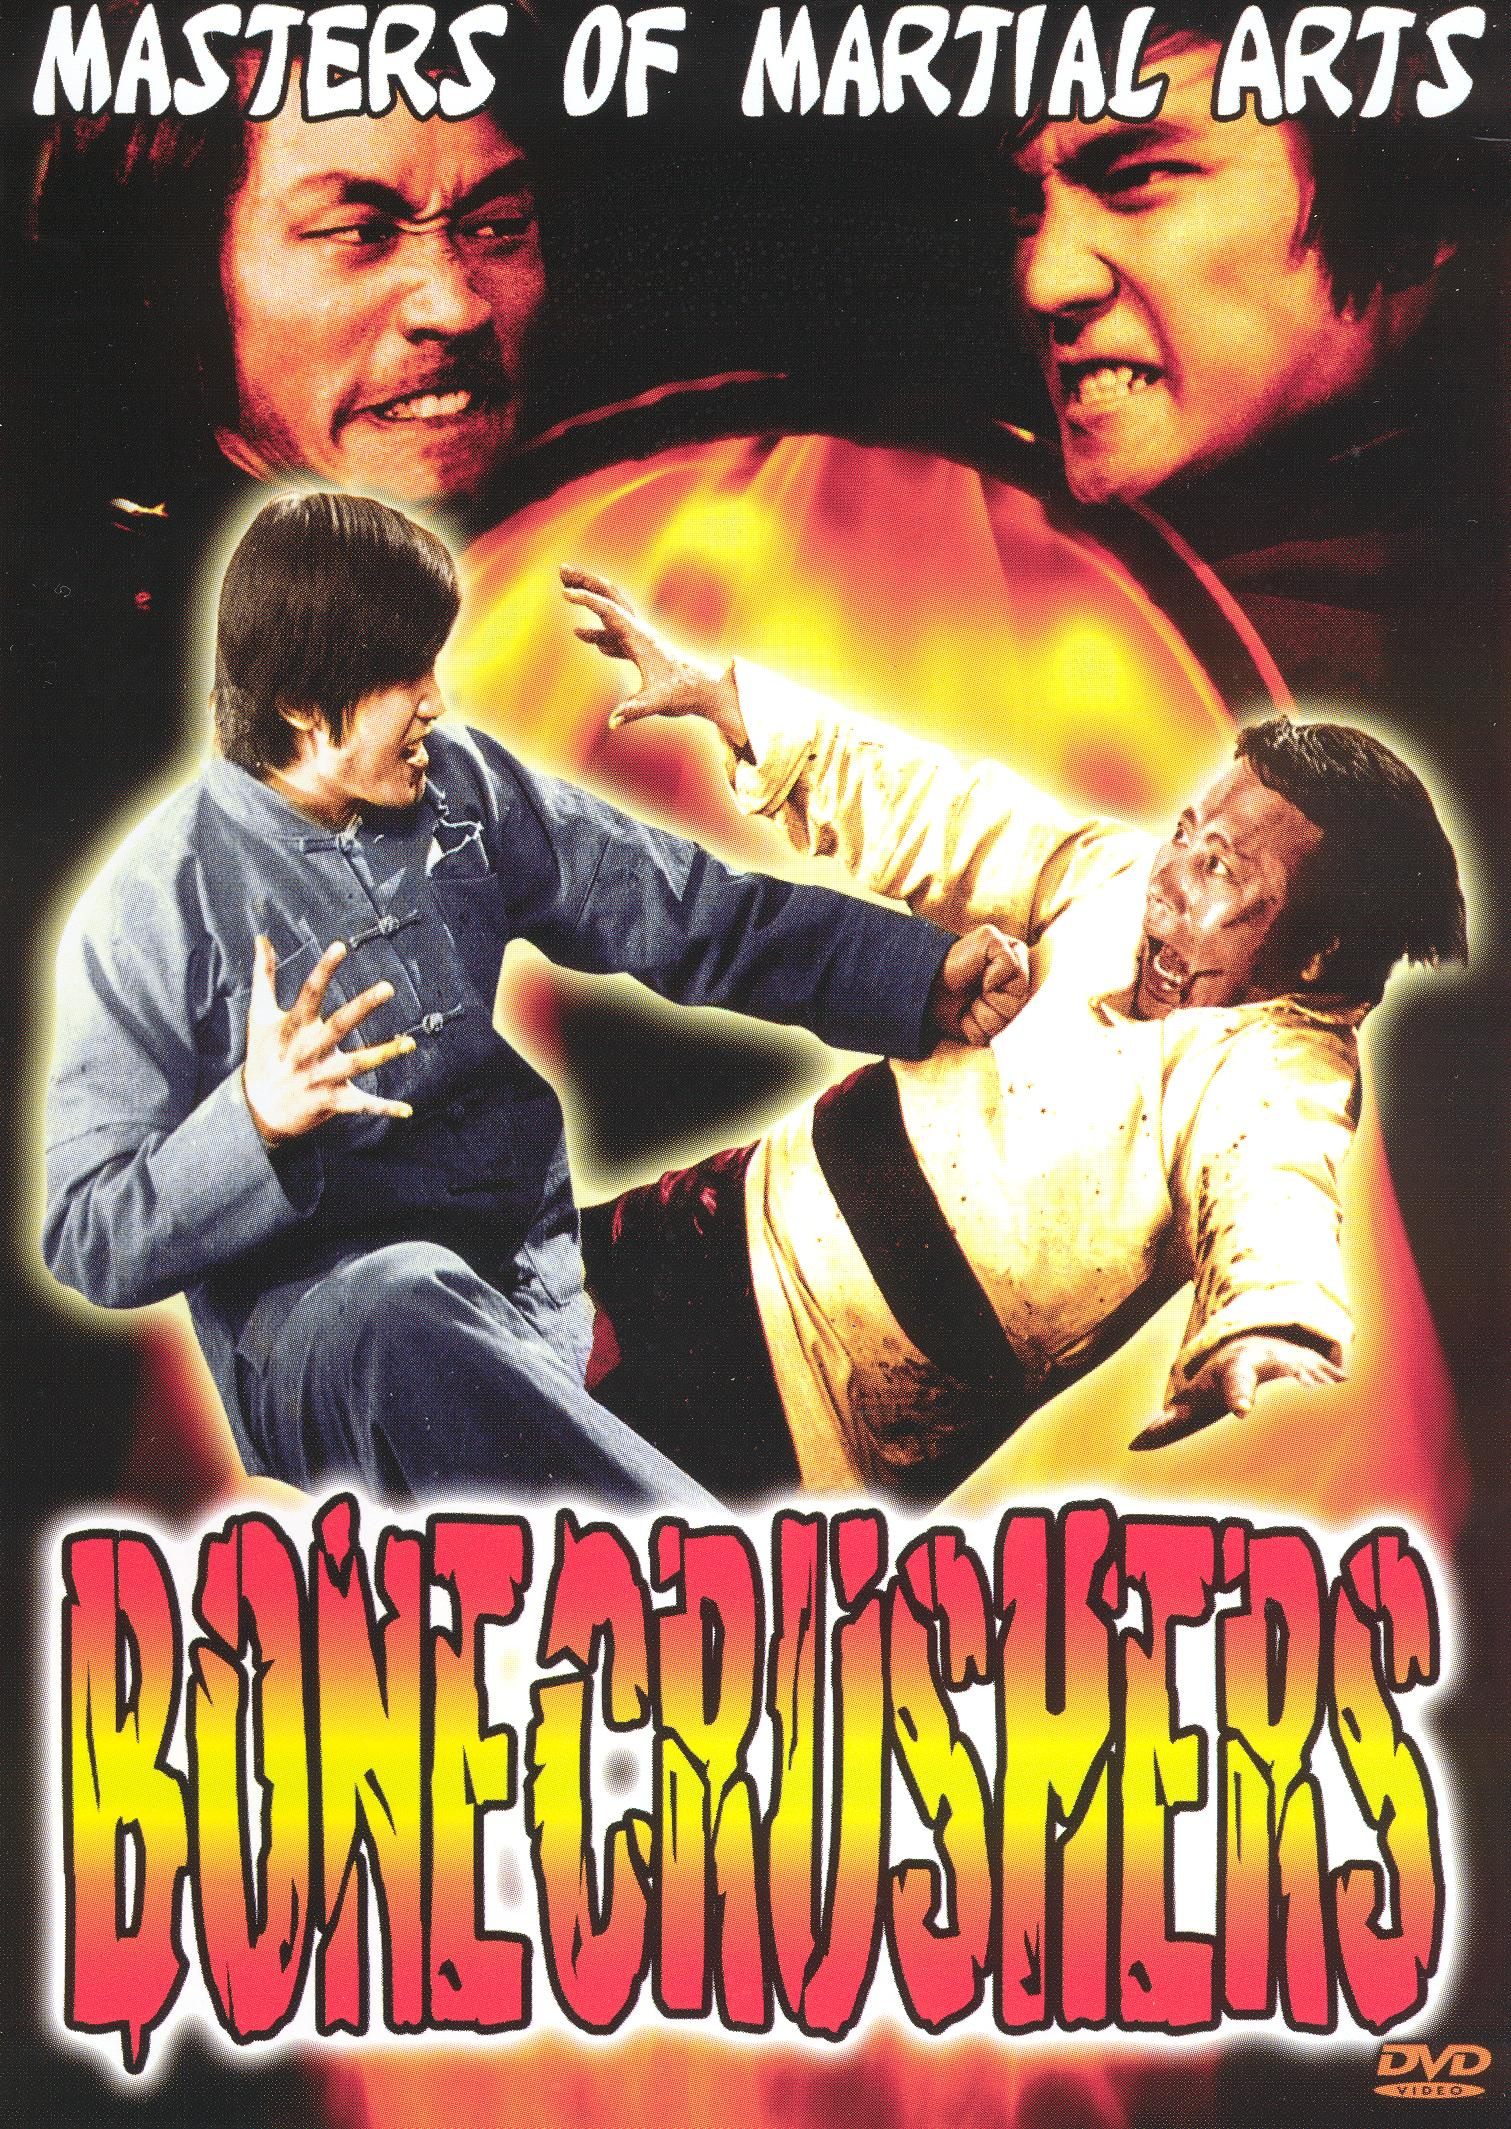 Masters of Martial Arts: Bone Crushers